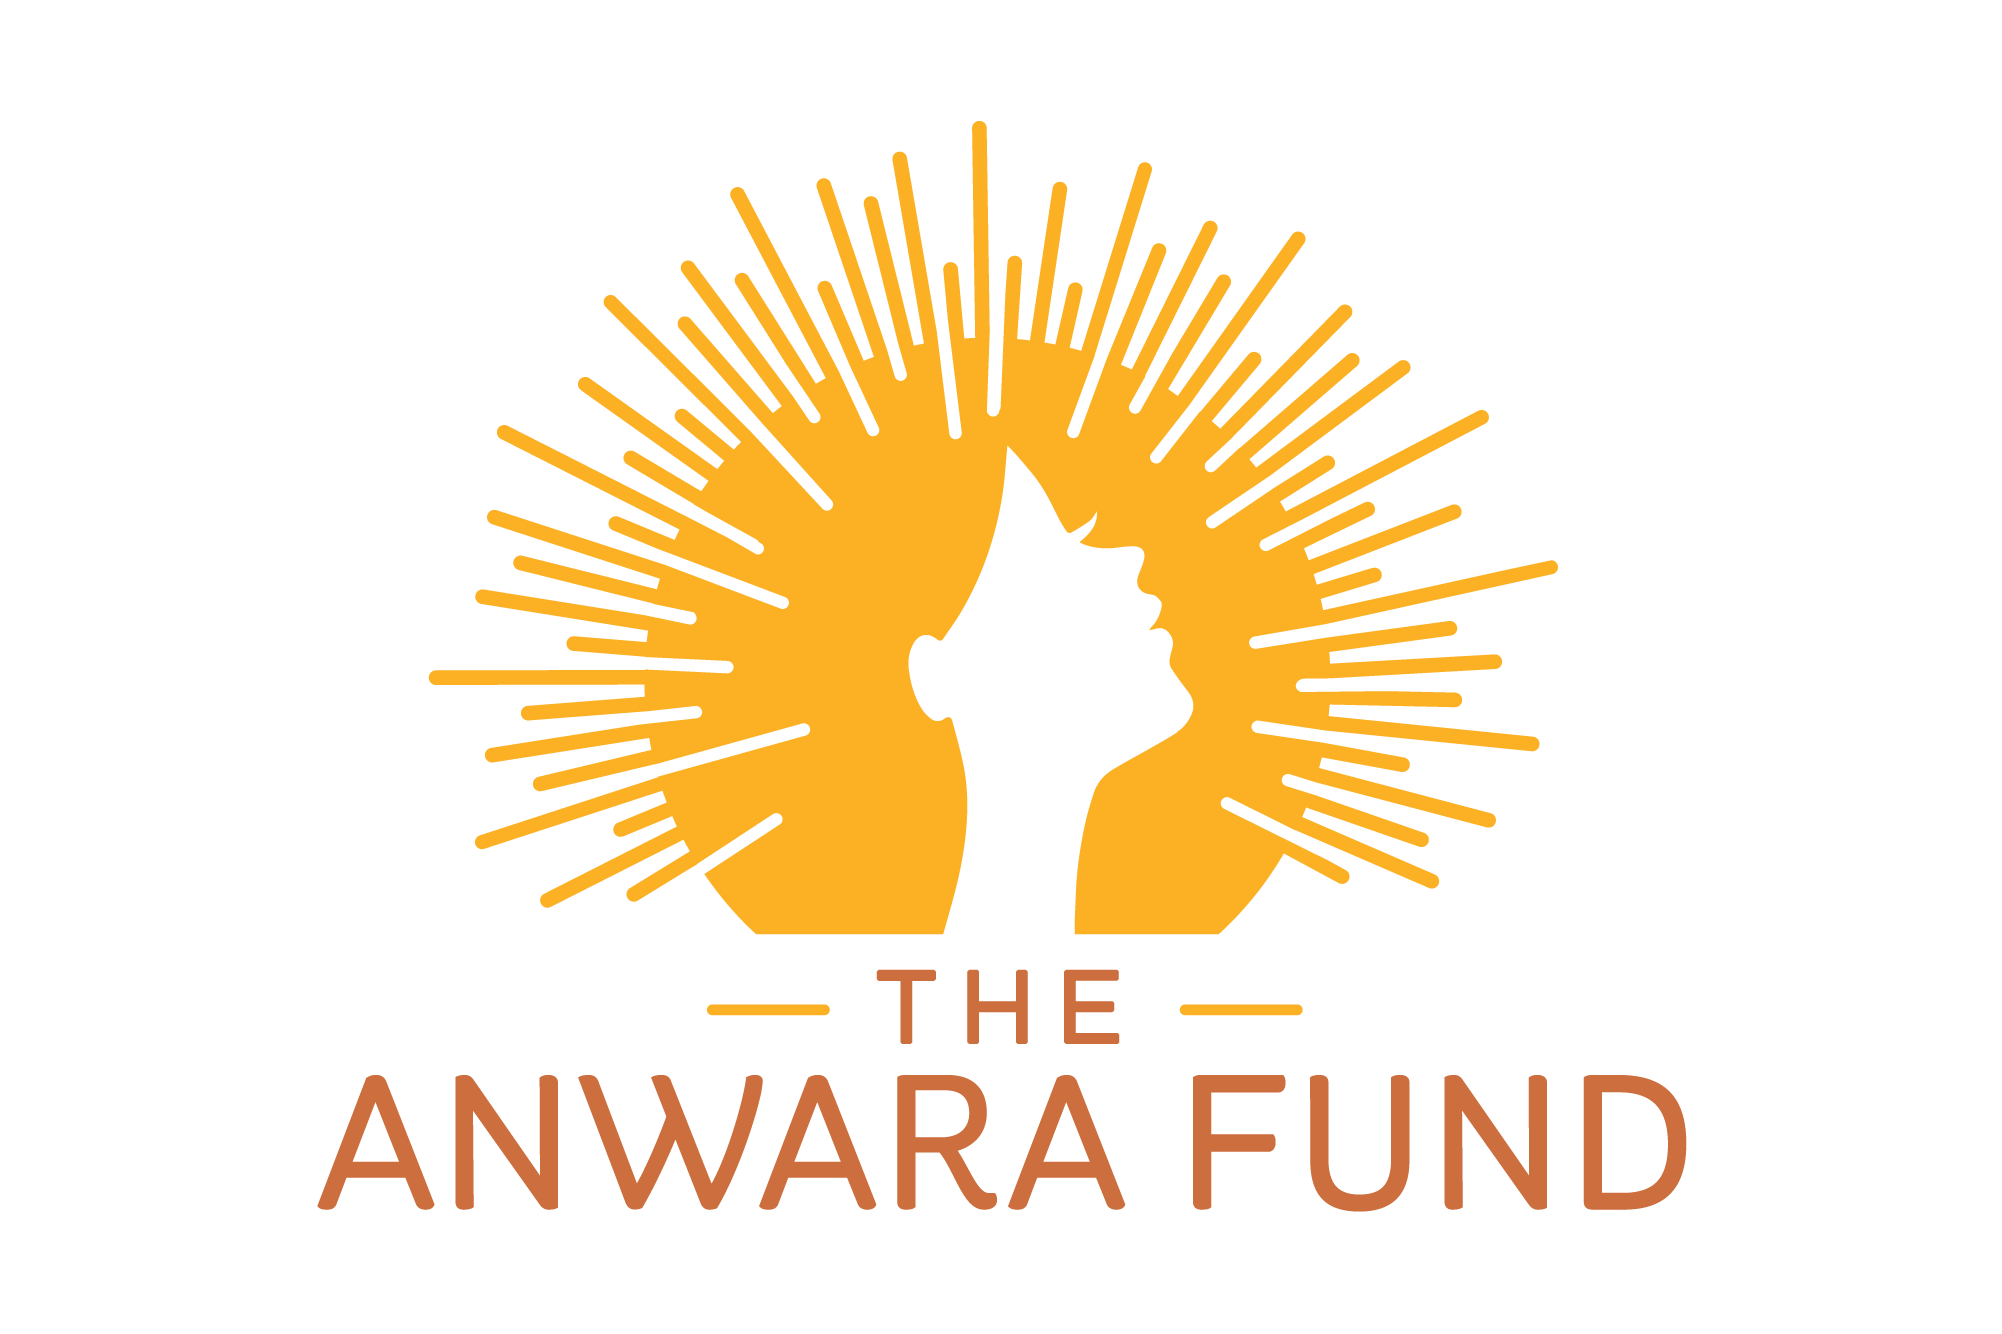 The Anwara Fund, Non-Profit Logo Design, Affordable Design Services, OtherWisz Creative